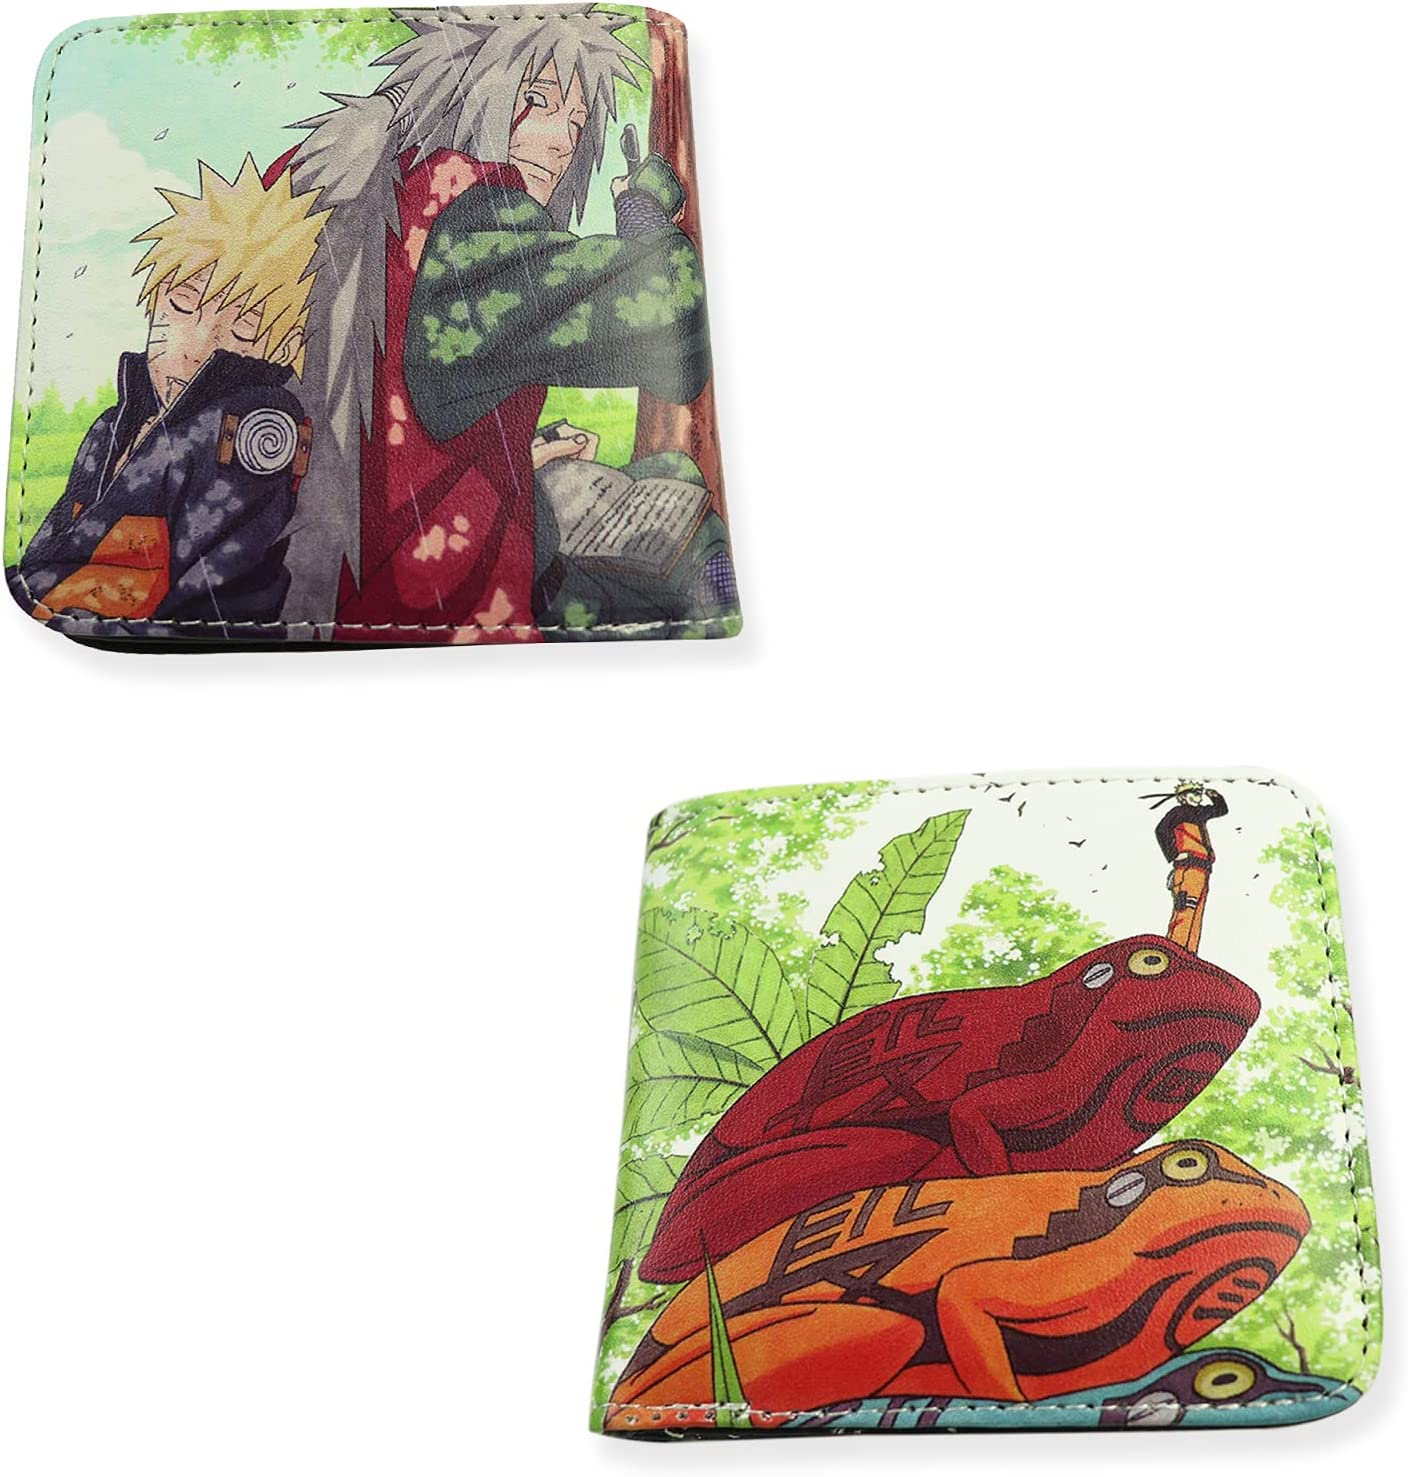 Anime Wallet Anime Card Holder Purse Leather Bifold Multi Color Birthday Gift